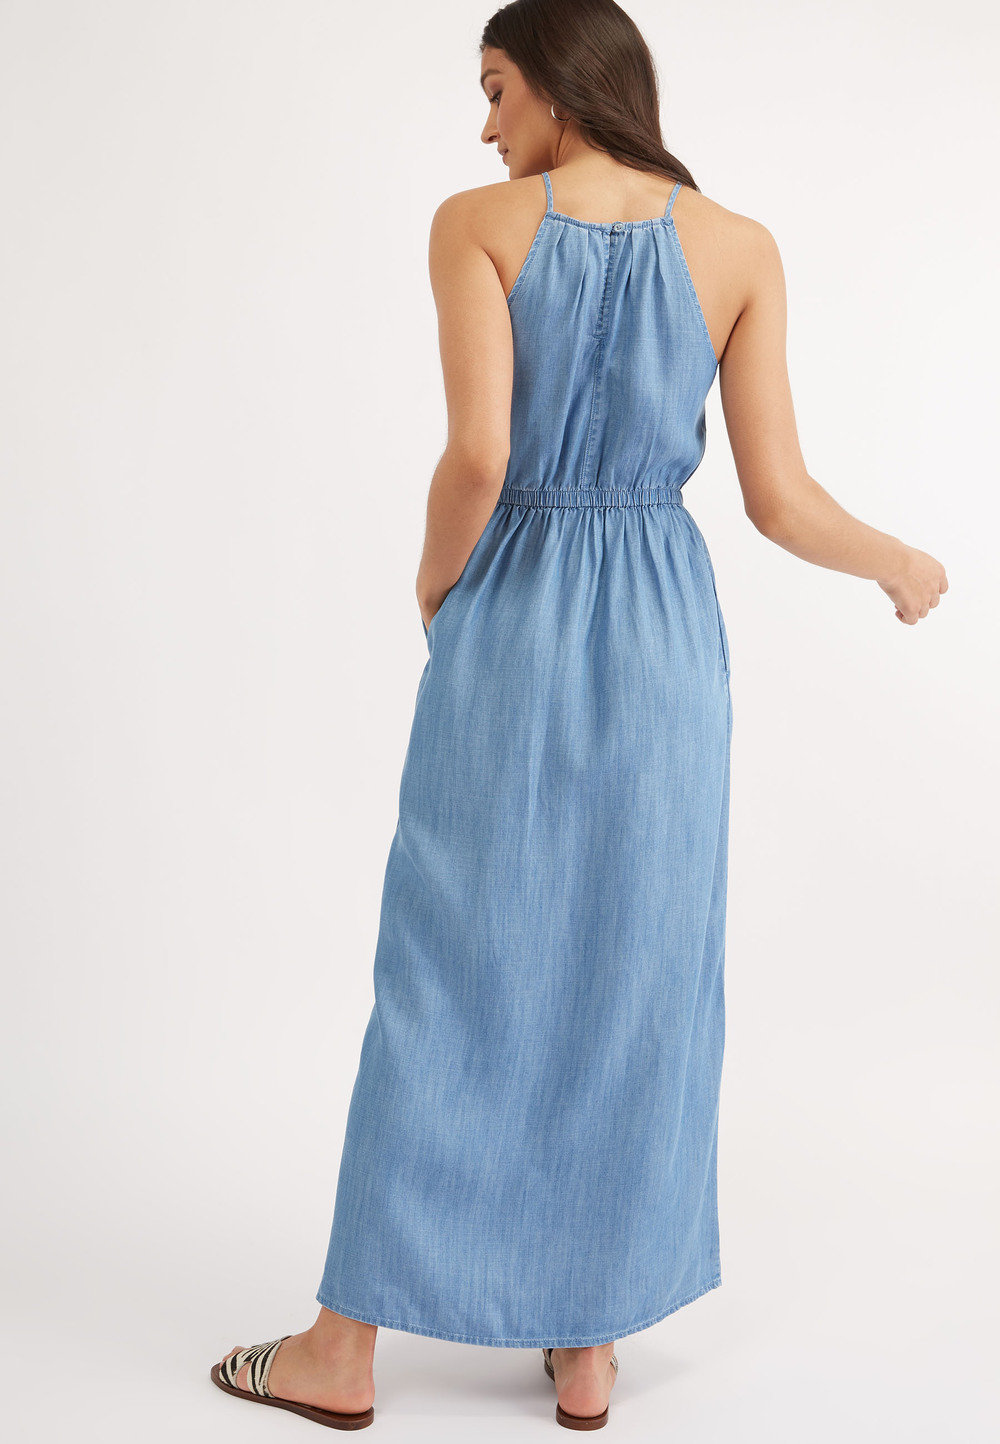 Next Tencel Maxi Dress Online | Shop EziBuy